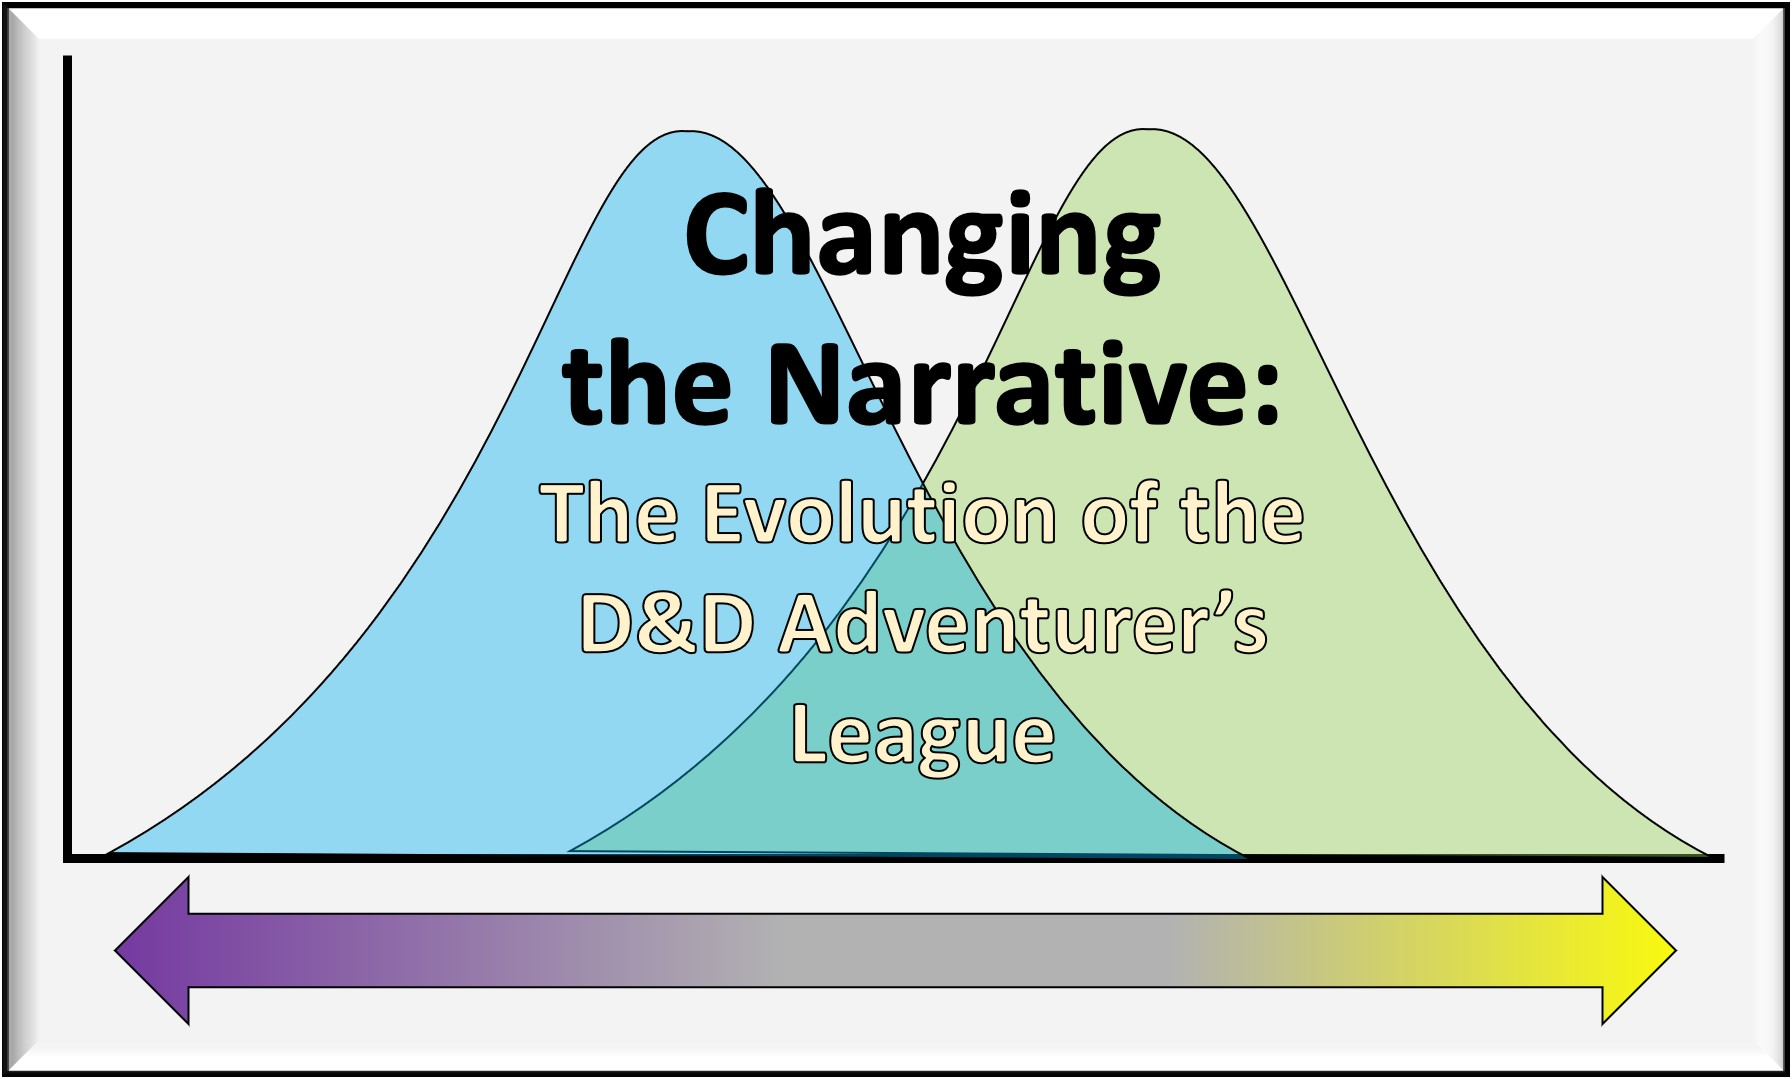 Changing the Narrative: The Evolution of the D&D Adventurer's League